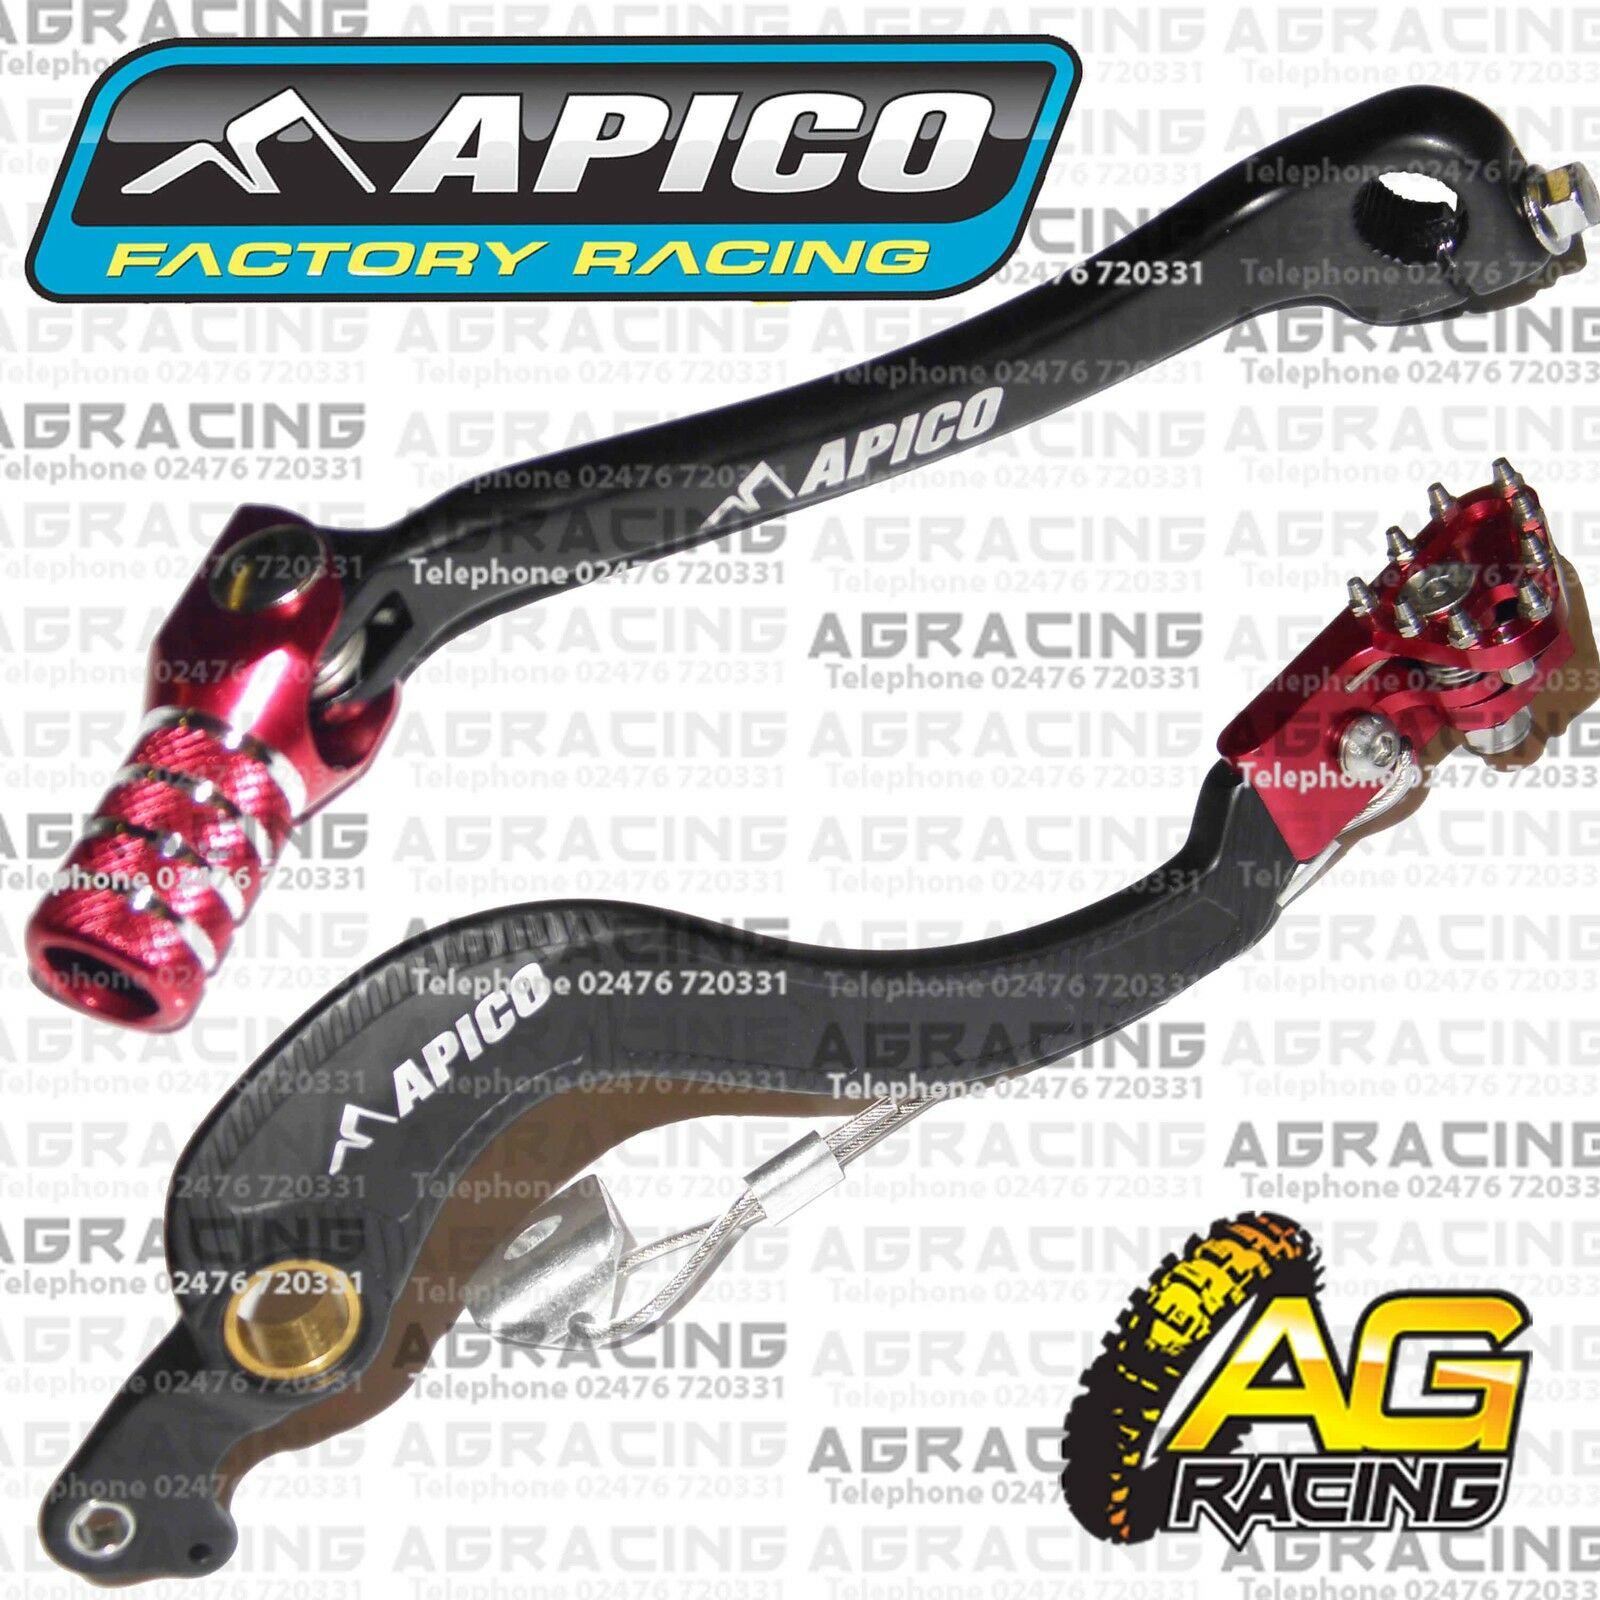 APICO FORGED BRAKE LEVER FITS KTM FREERIDE 250 350 2014-2018 BLACK